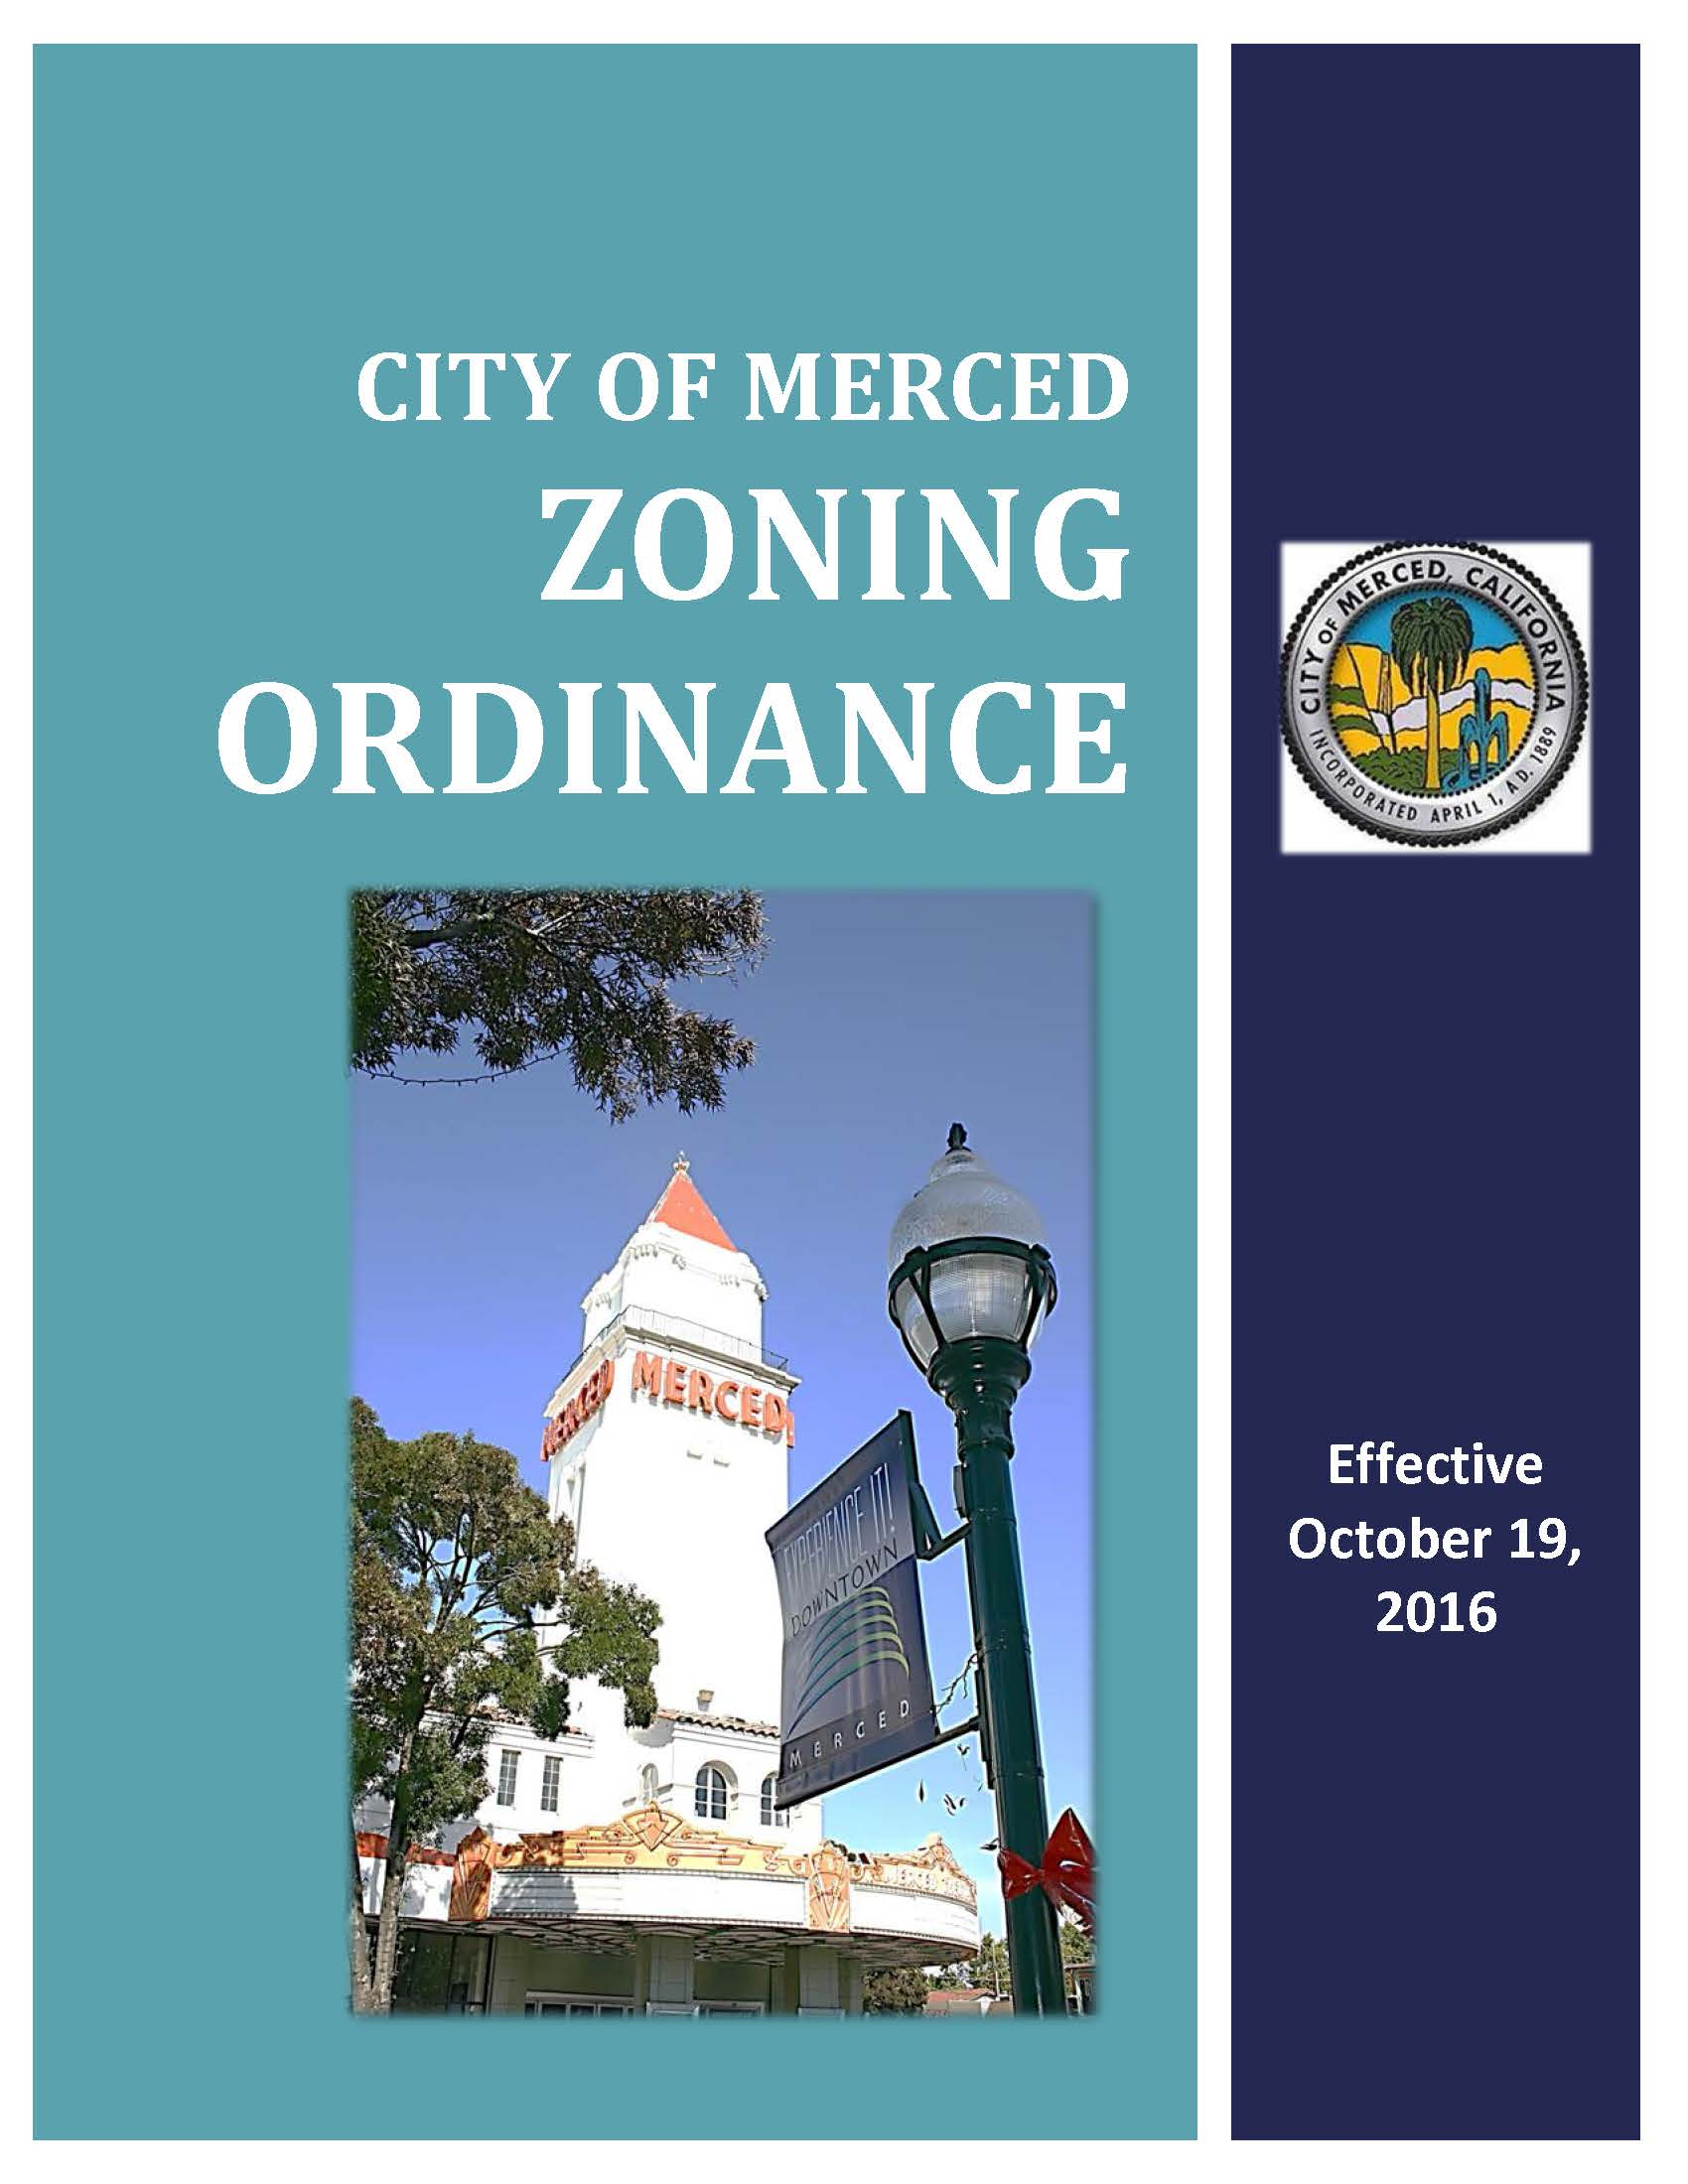 Merced Zoning Ordinance cover page